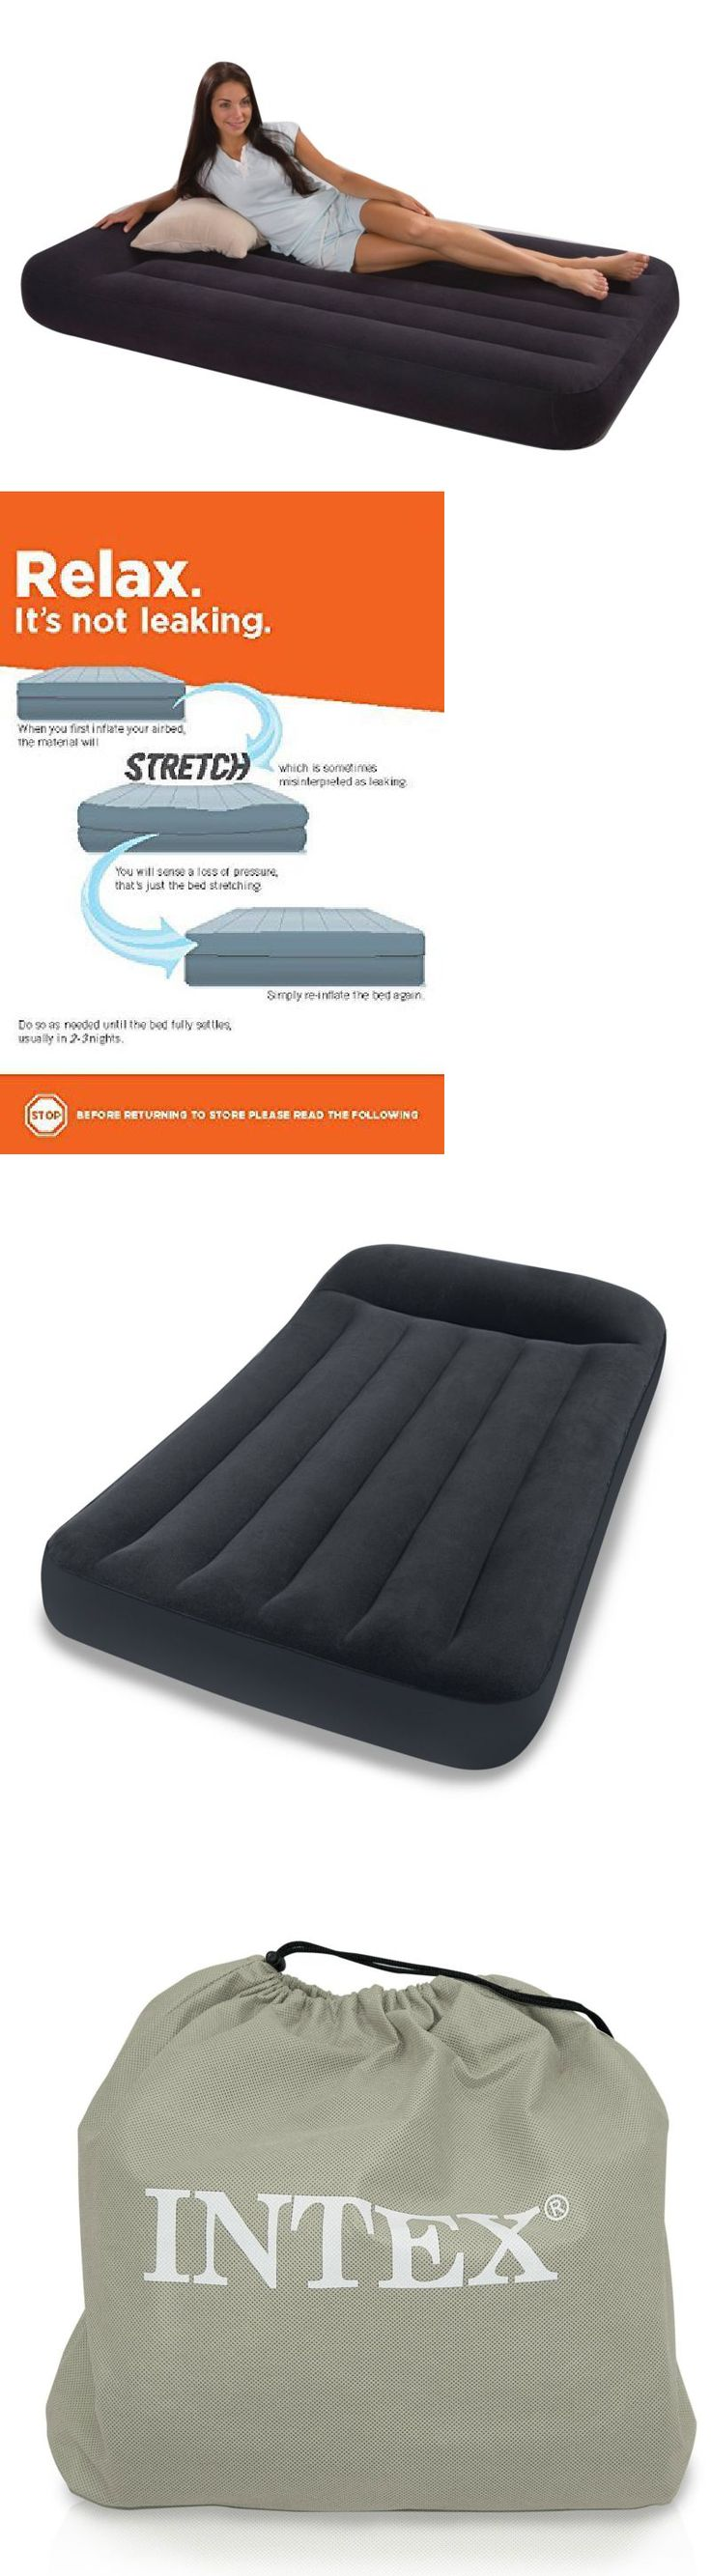 Inflatable Mattresses Airbeds 131598: Intex Twin Classic Pillow Rest Air  Mattress Bed With Built-